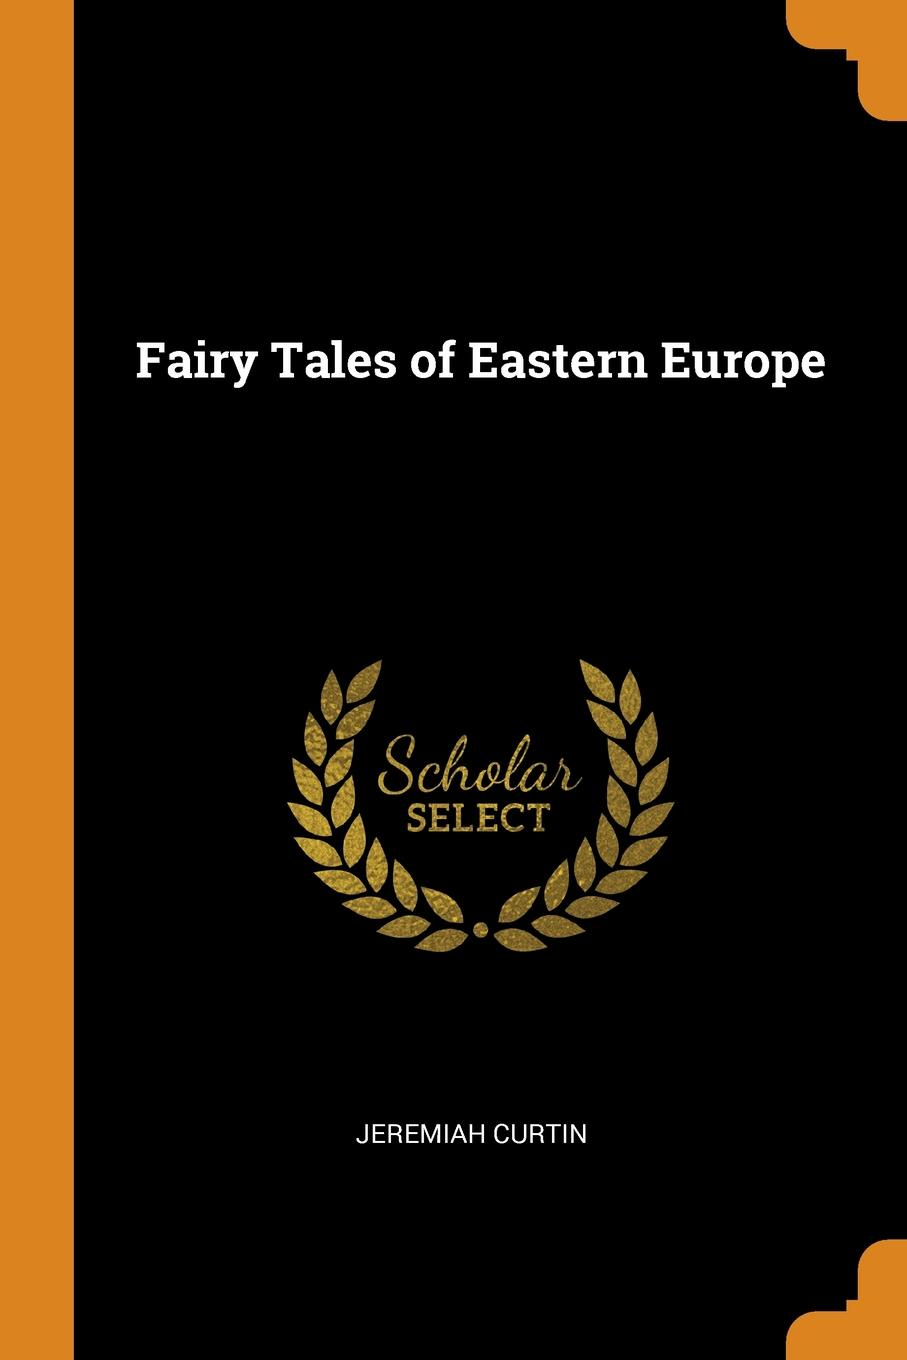 Jeremiah Curtin Fairy Tales of Eastern Europe